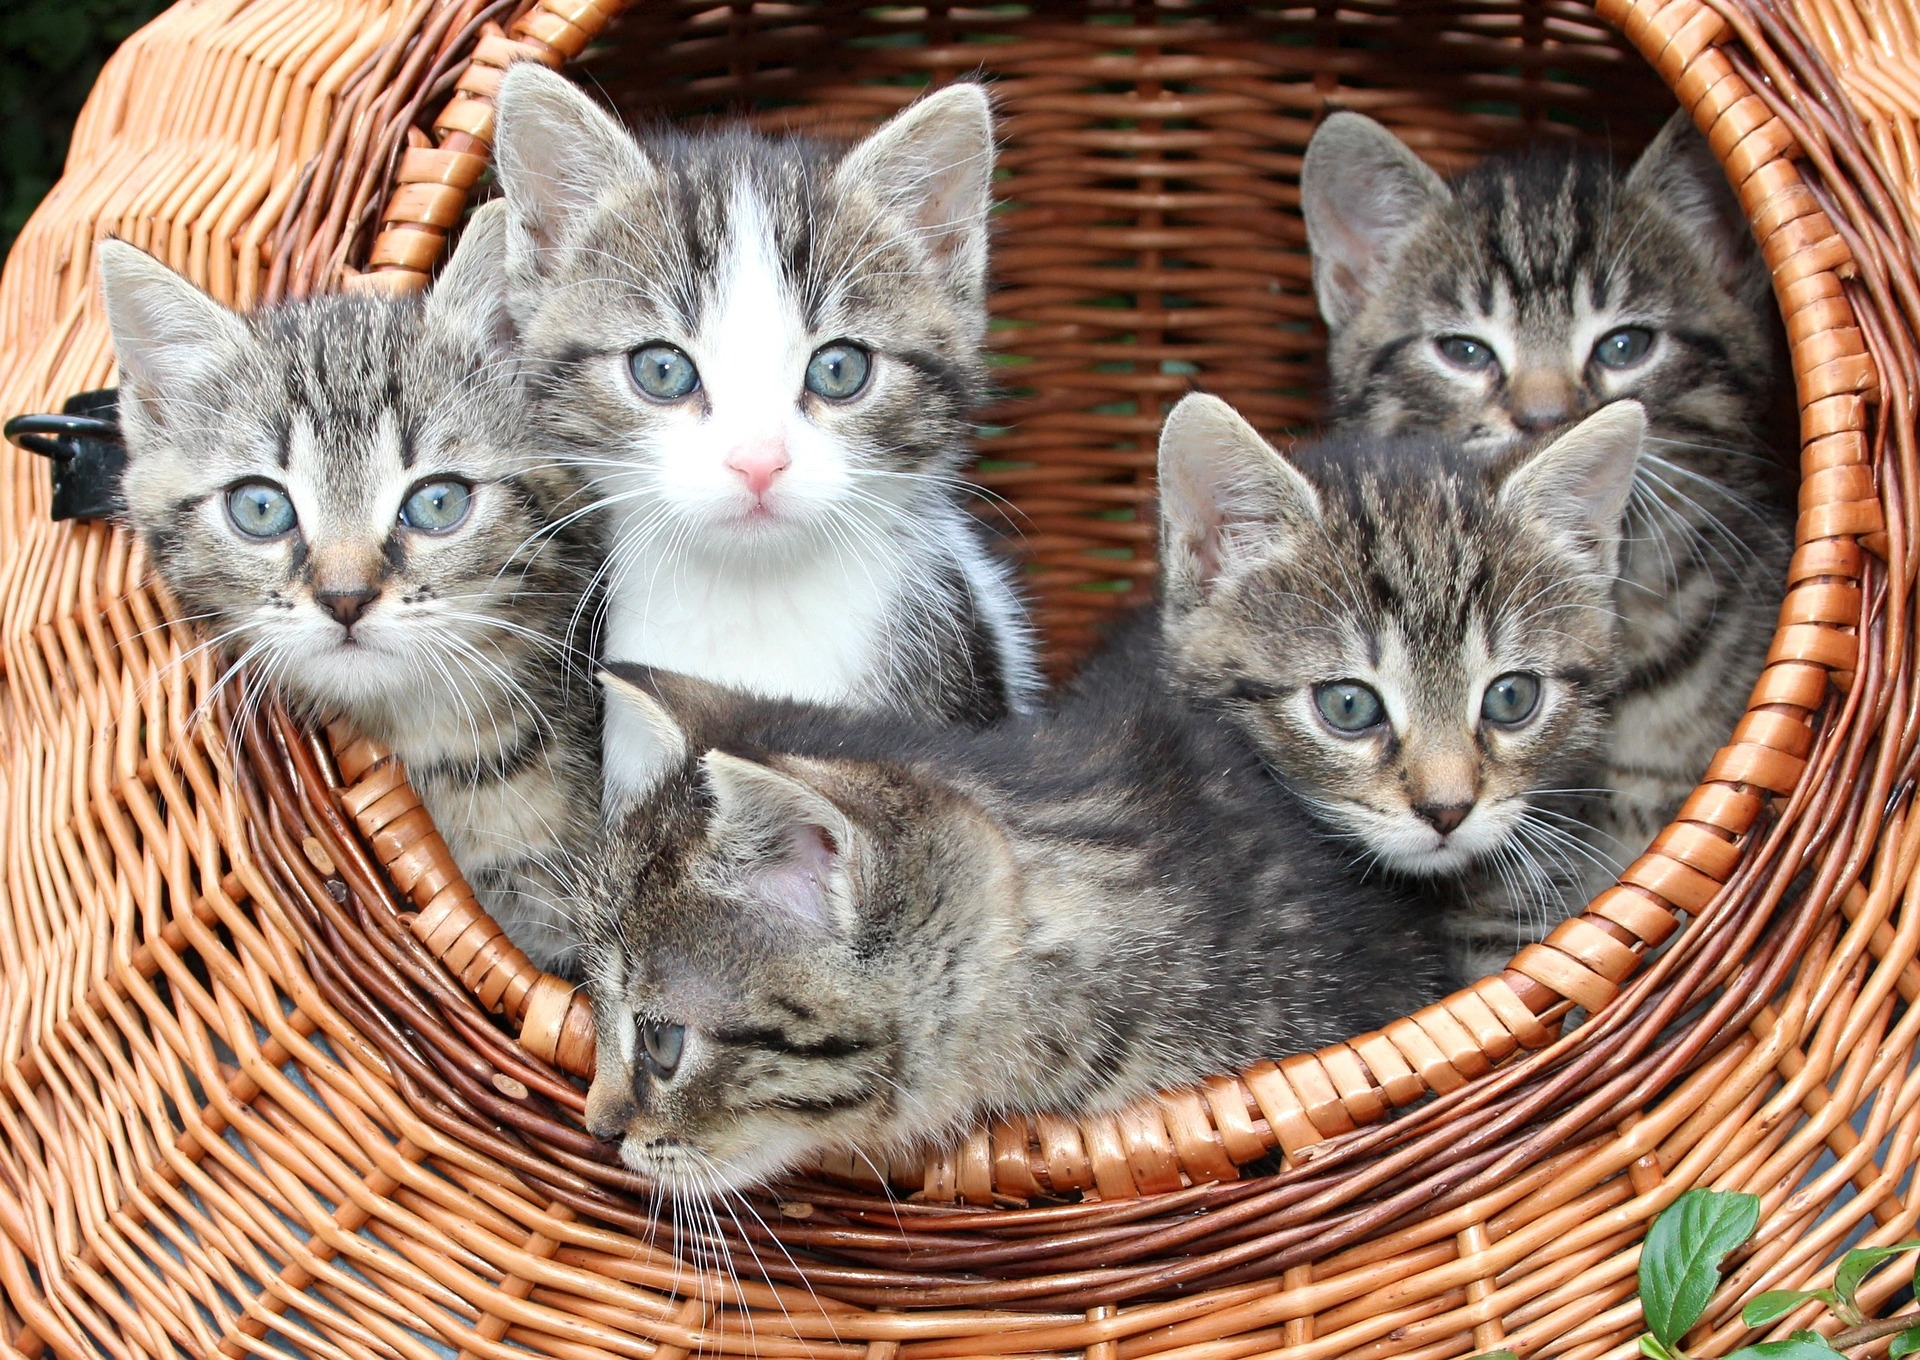 Bringing home baby cat 5 essential tips for success bringing home baby cat 5 essential tips for success thecheapjerseys Images